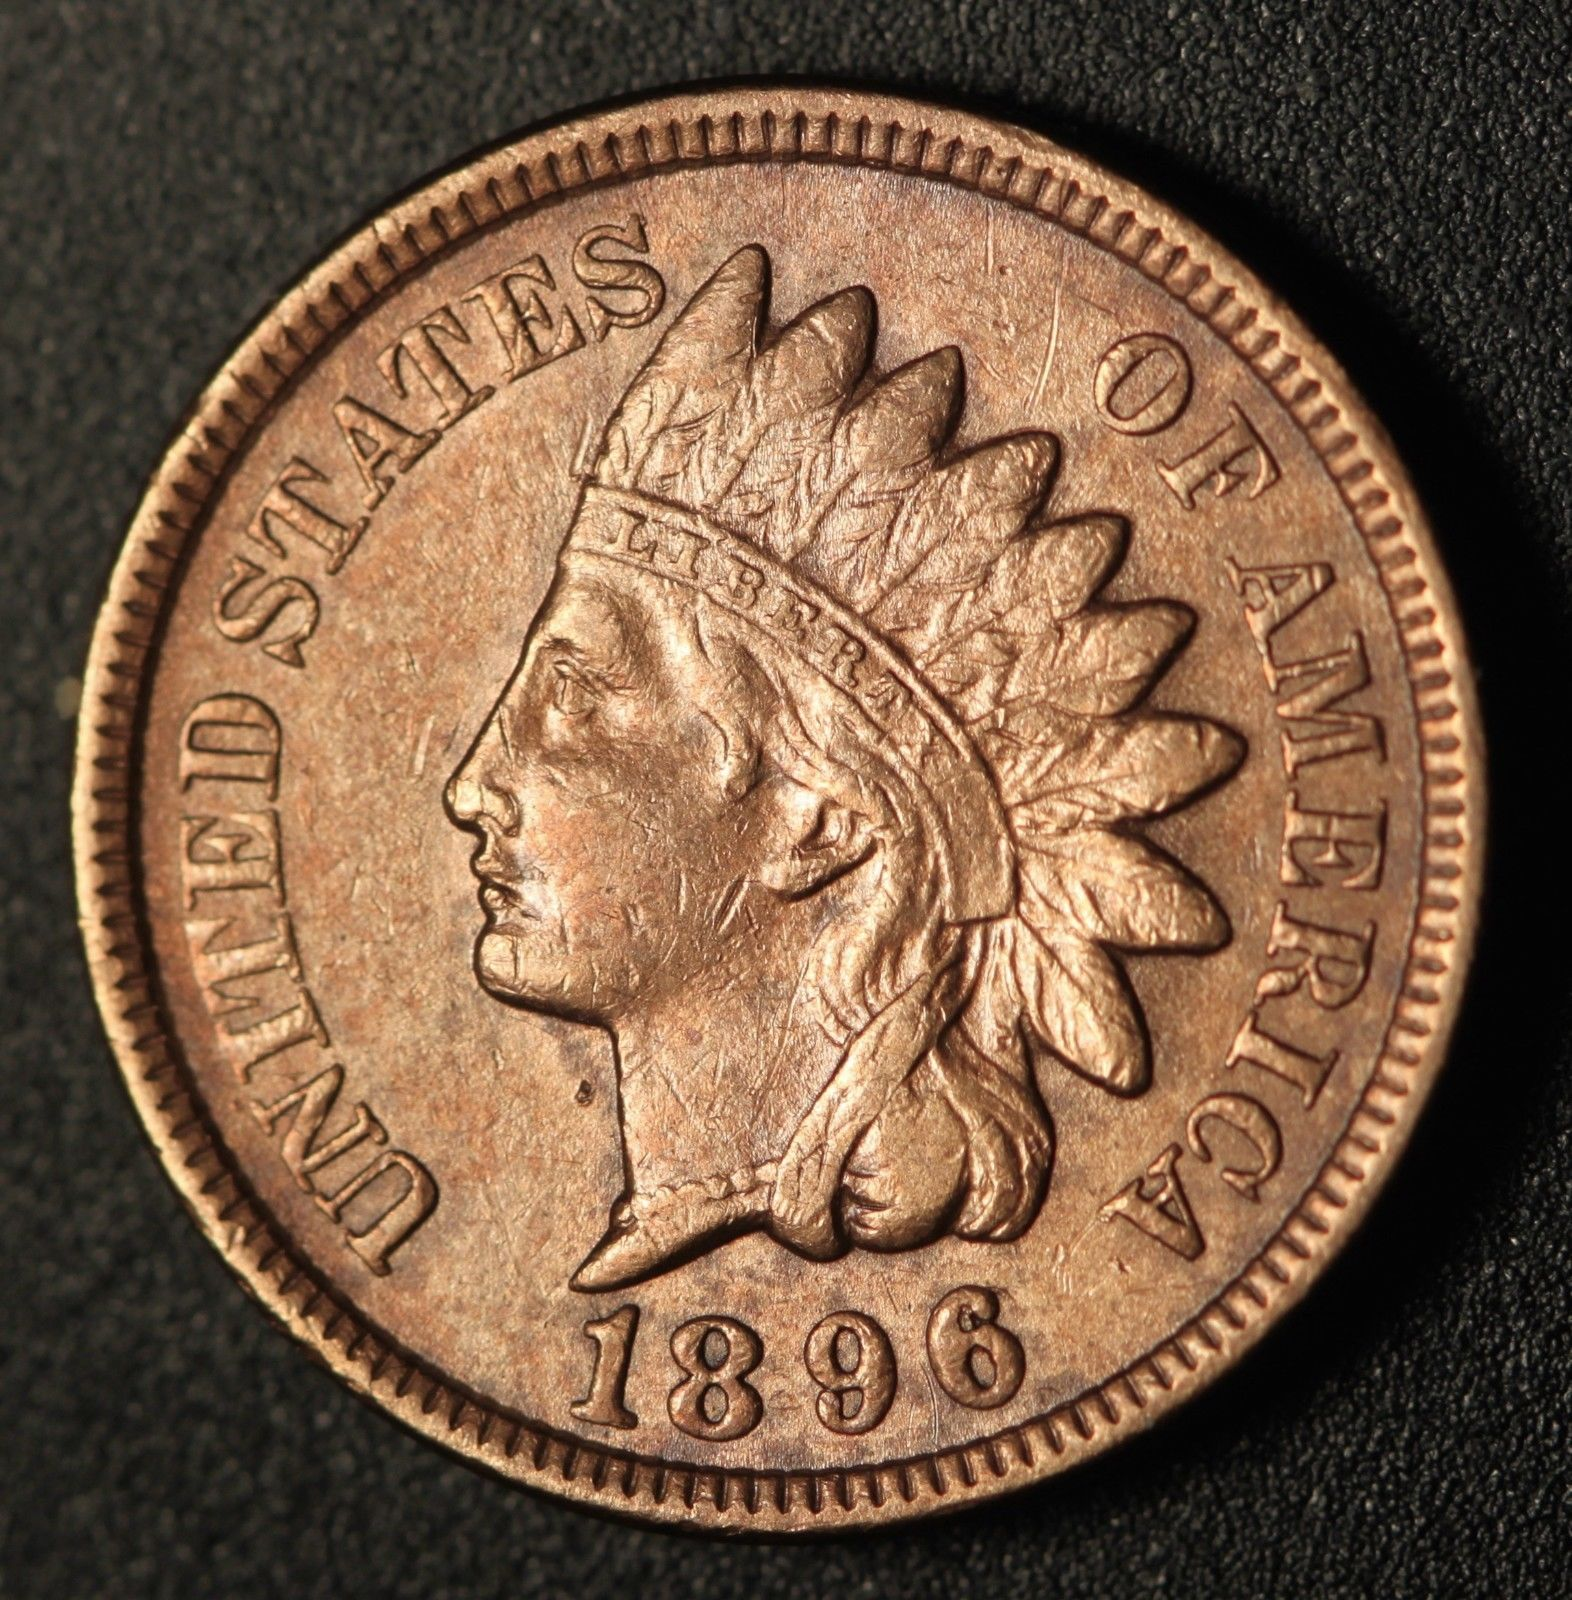 1896 RPD-002 - Indian Head Penny - Photo by Ed Nathanson